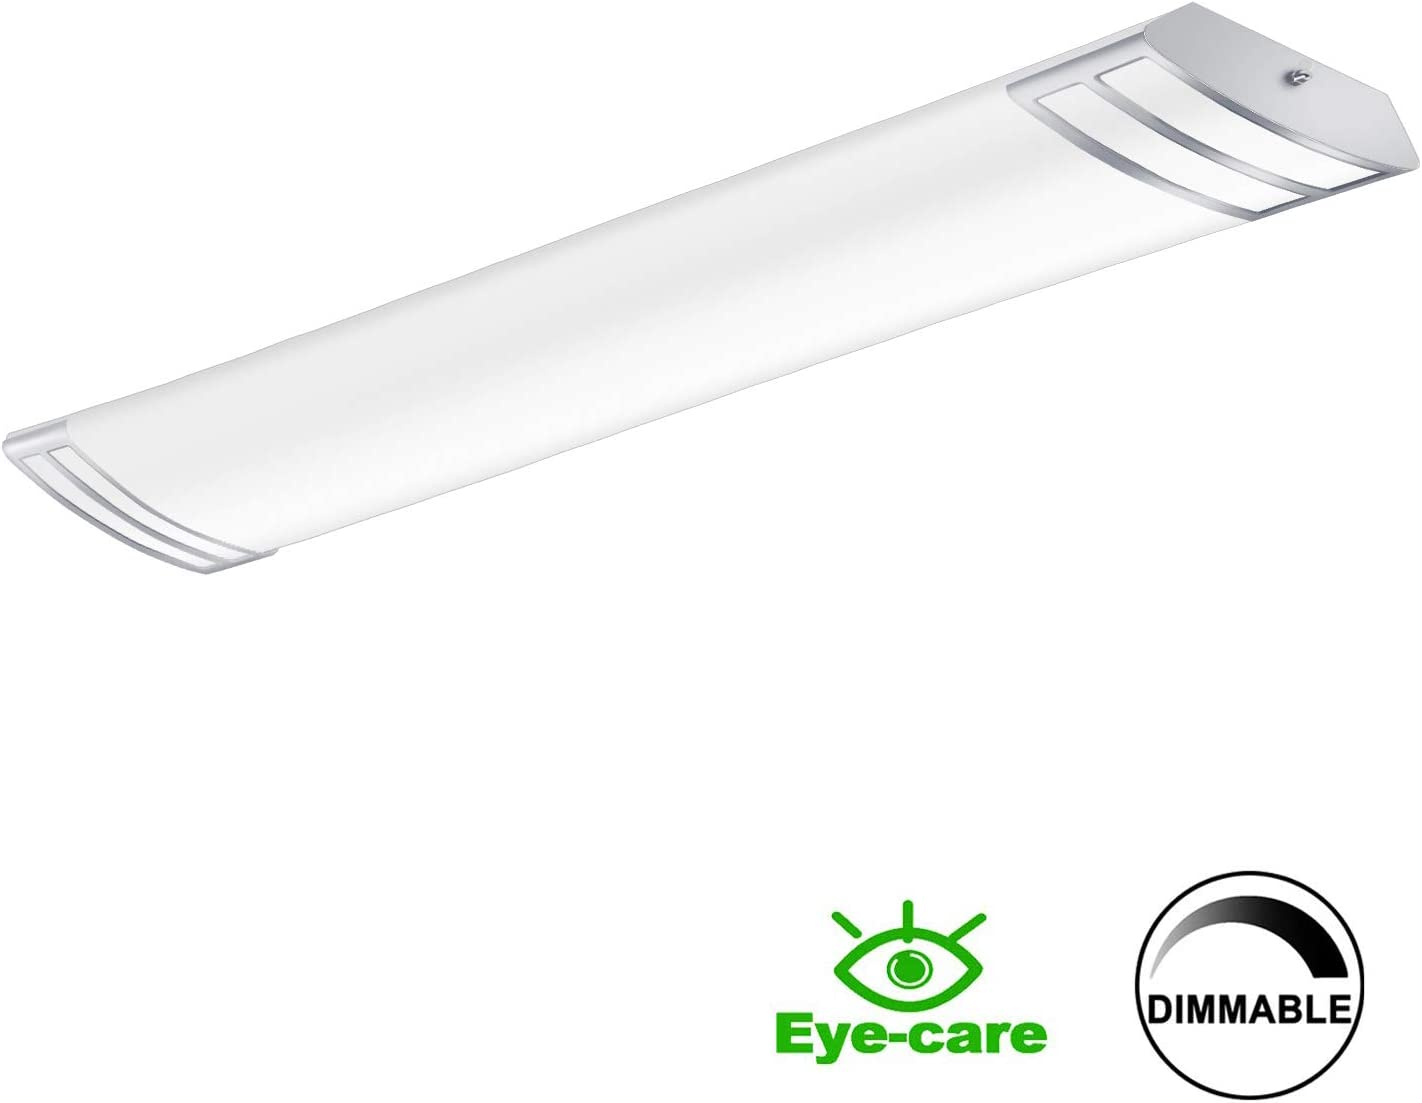 FaithSail 4FT LED Light Fixture 50W 5600lm Flush Mount Linear Lights, 4000K, 1-10V Dimmable, 4 Foot LED Kitchen Lighting Fixtures Ceiling for Craft Room, Laundry, Fluorescent Replacement